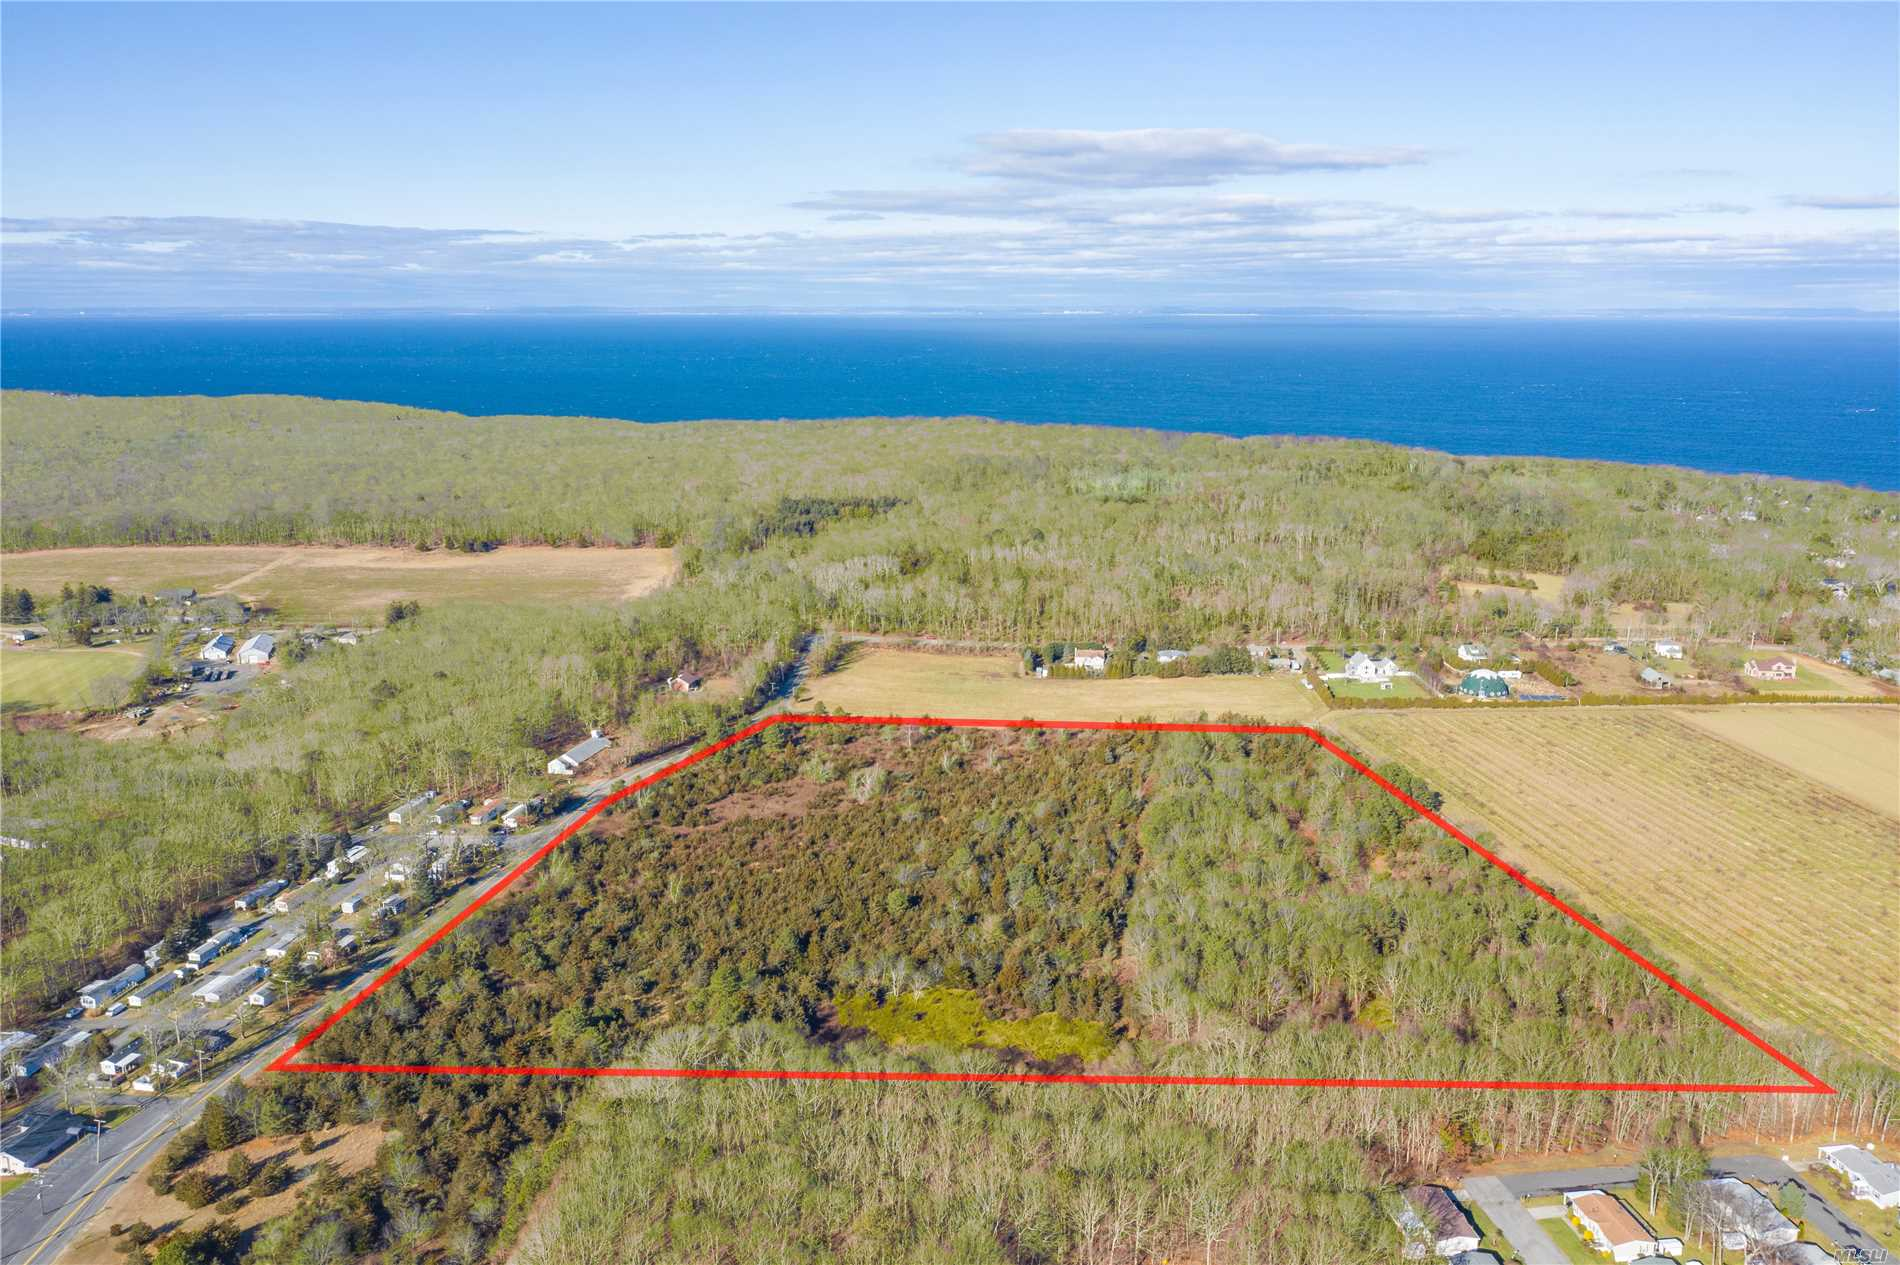 Rare 26.55 Level Acres With Development Rights In Tact Right Off Of Sound Avenue In Riverhead Township. Apz Zoning Which Allows For Multiple Uses Including Residential And Agricultural Purposes Among Others. Subdivision Possible. Great Value. Opportunity Awaits.